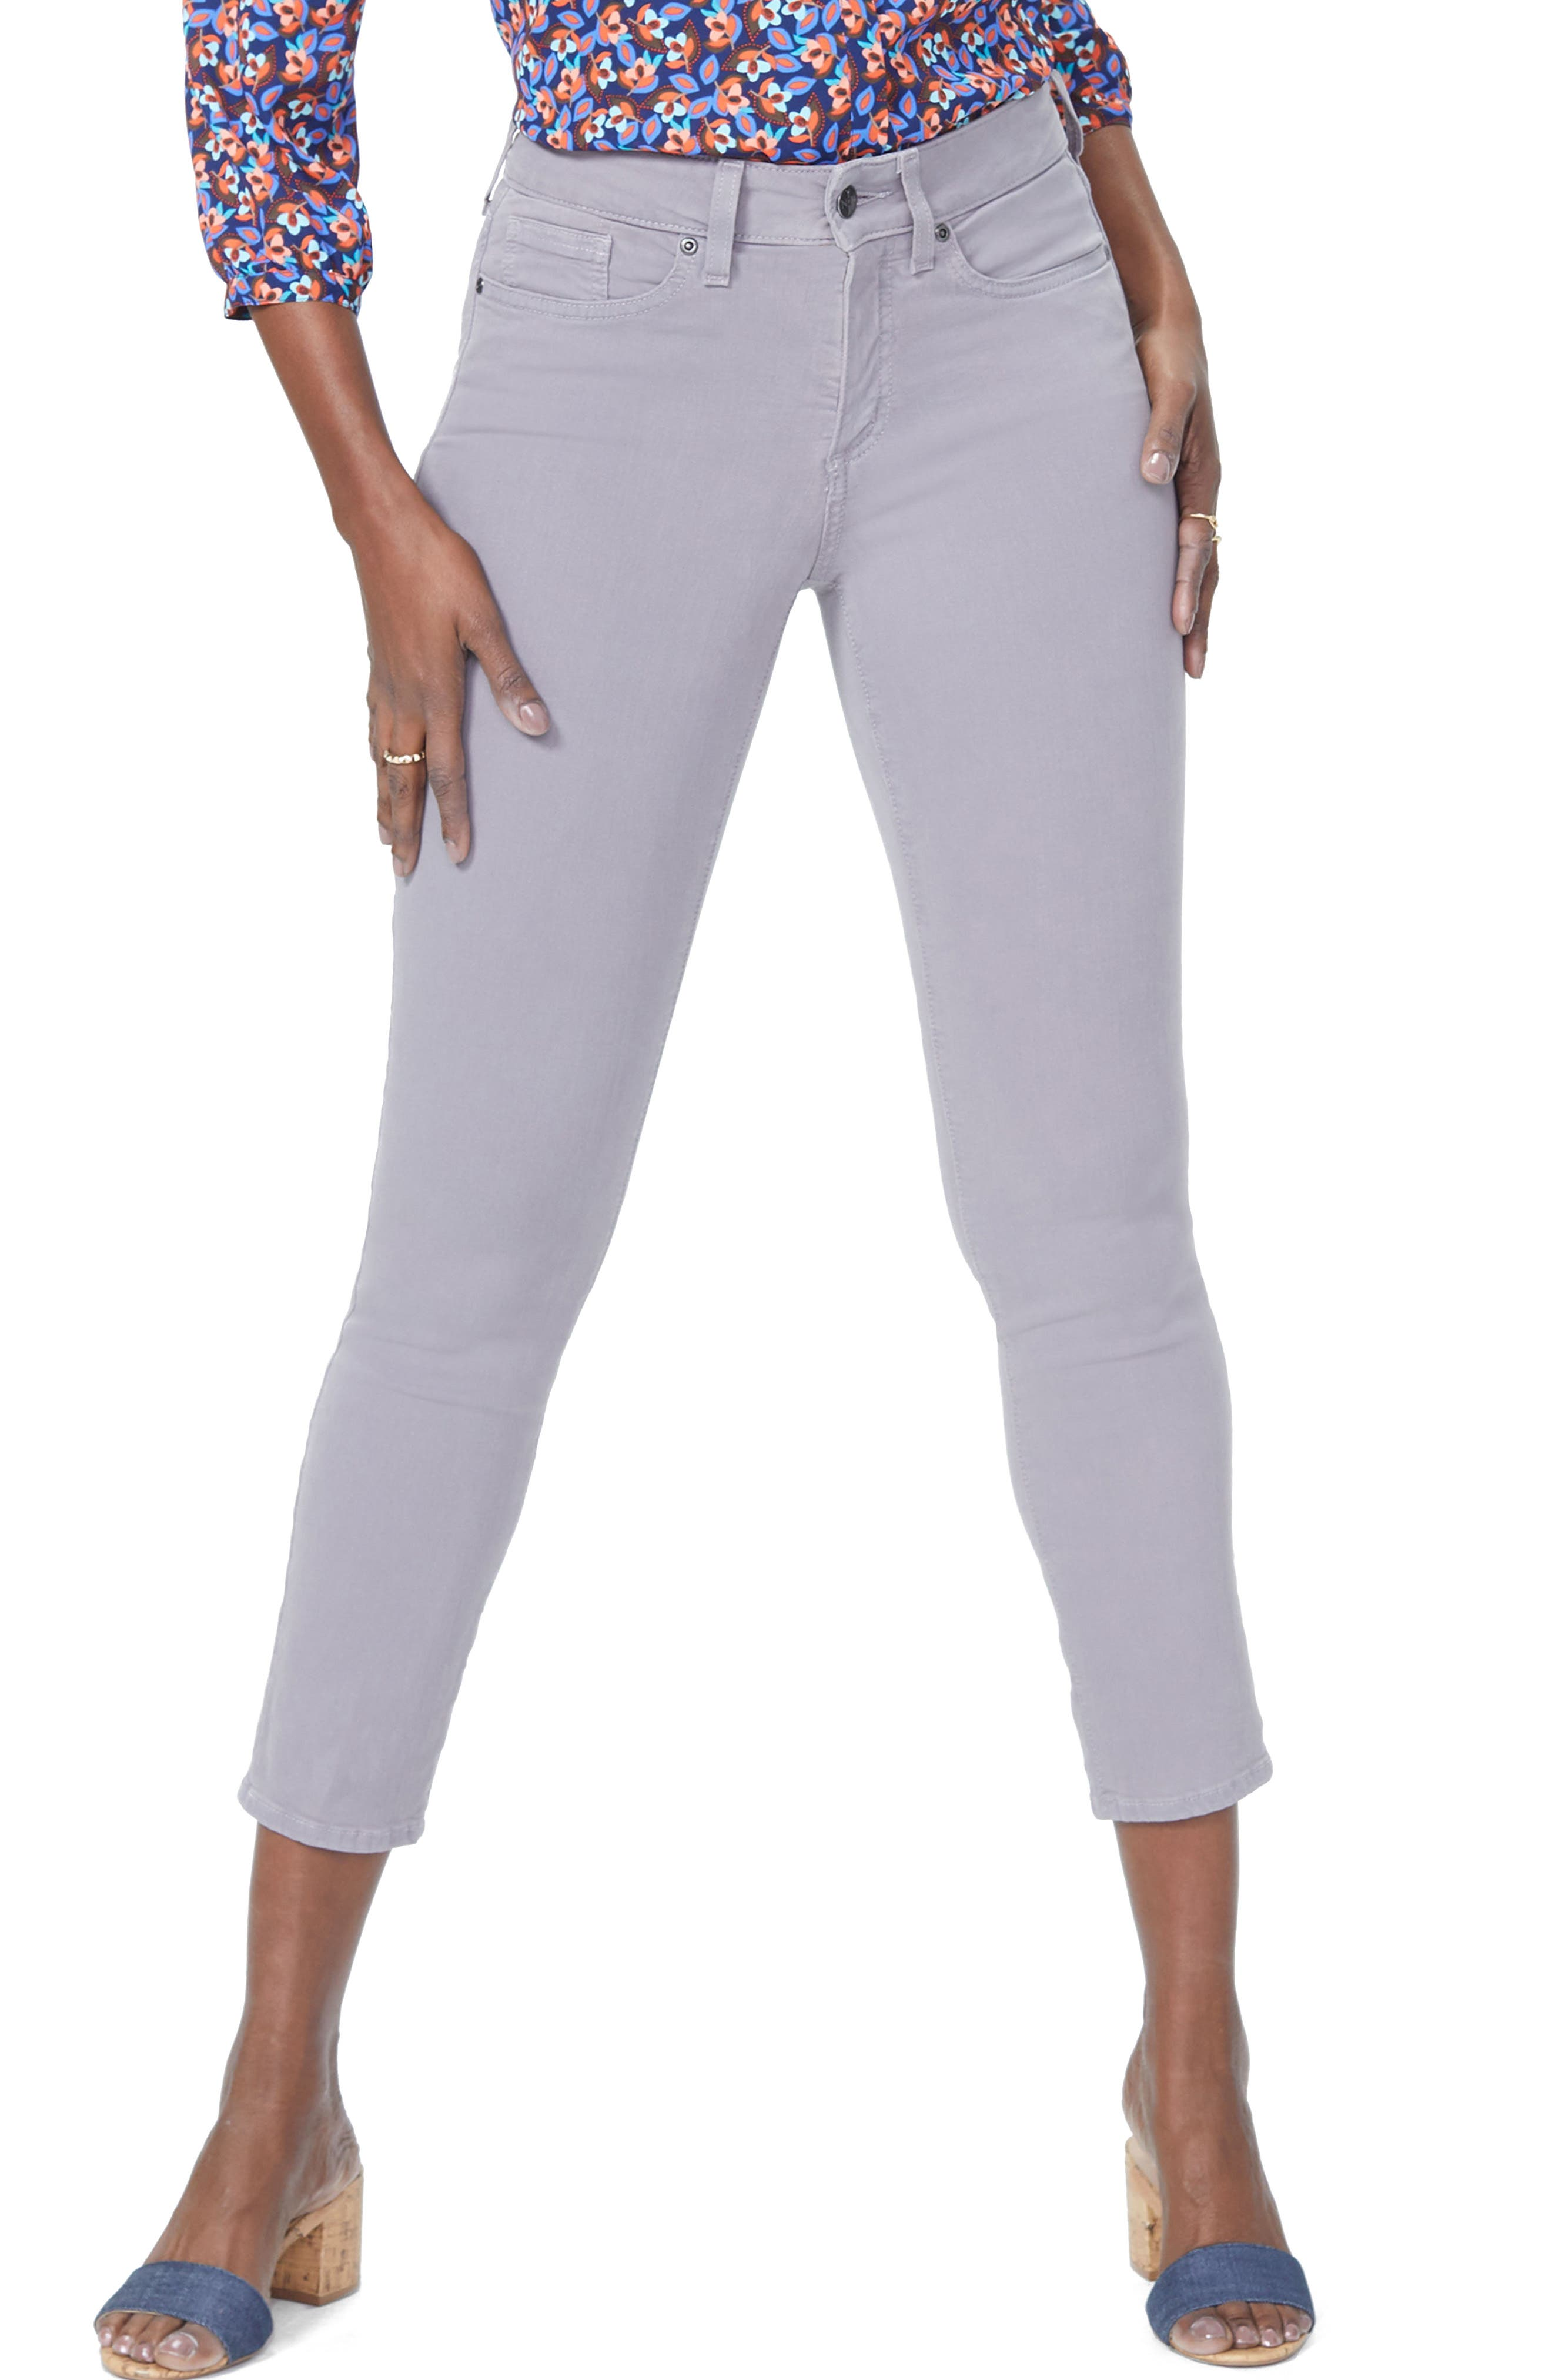 Alina High Waist Ankle Jeans,                         Main,                         color, 022